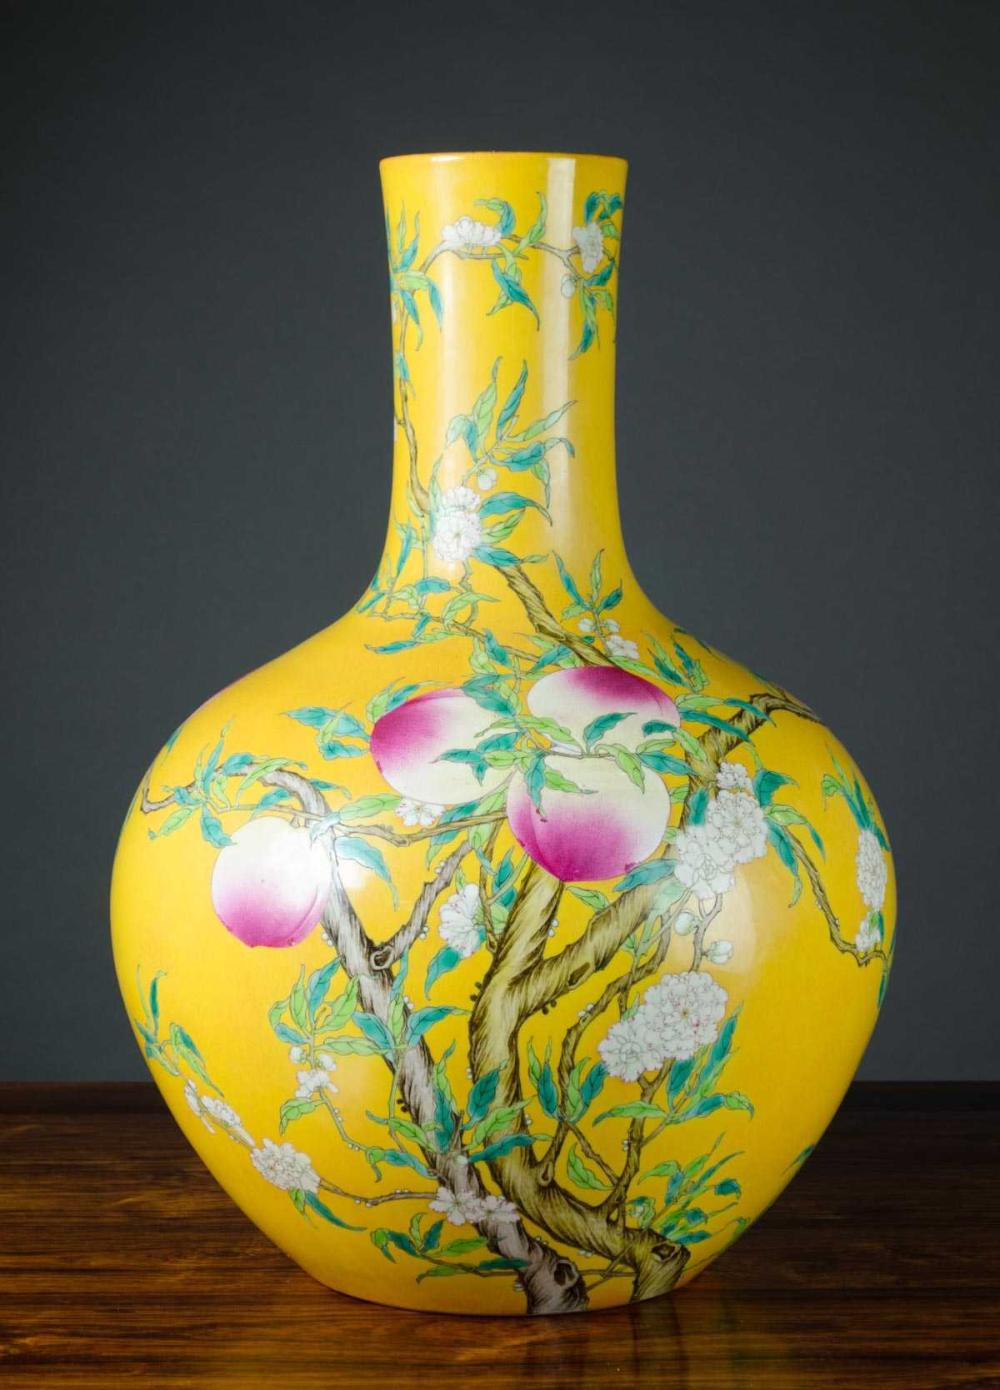 CHINESE PORCELAIN VASE, attributed Qing Dynasty (1